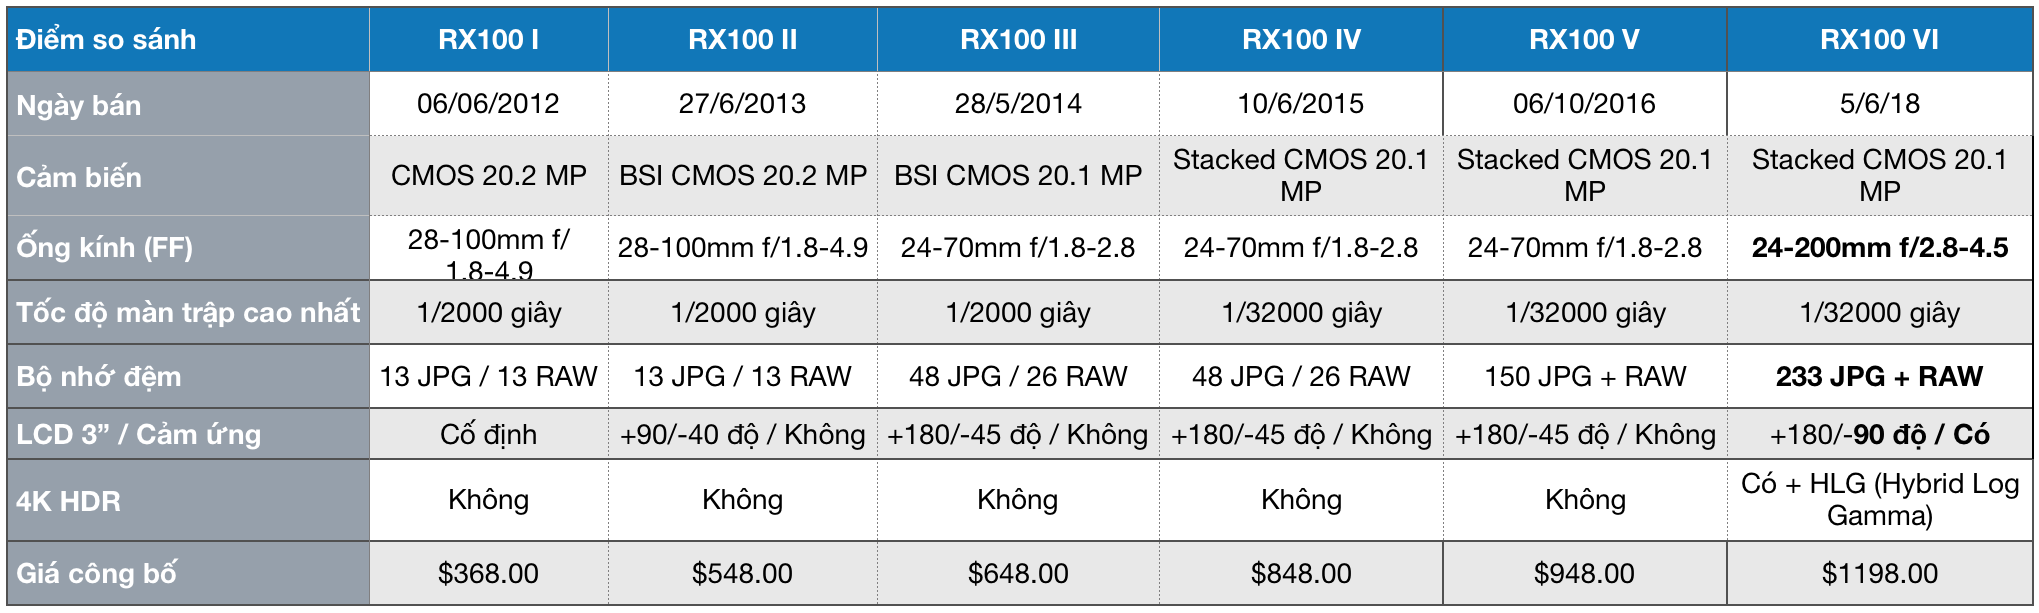 ss rx100 6.png